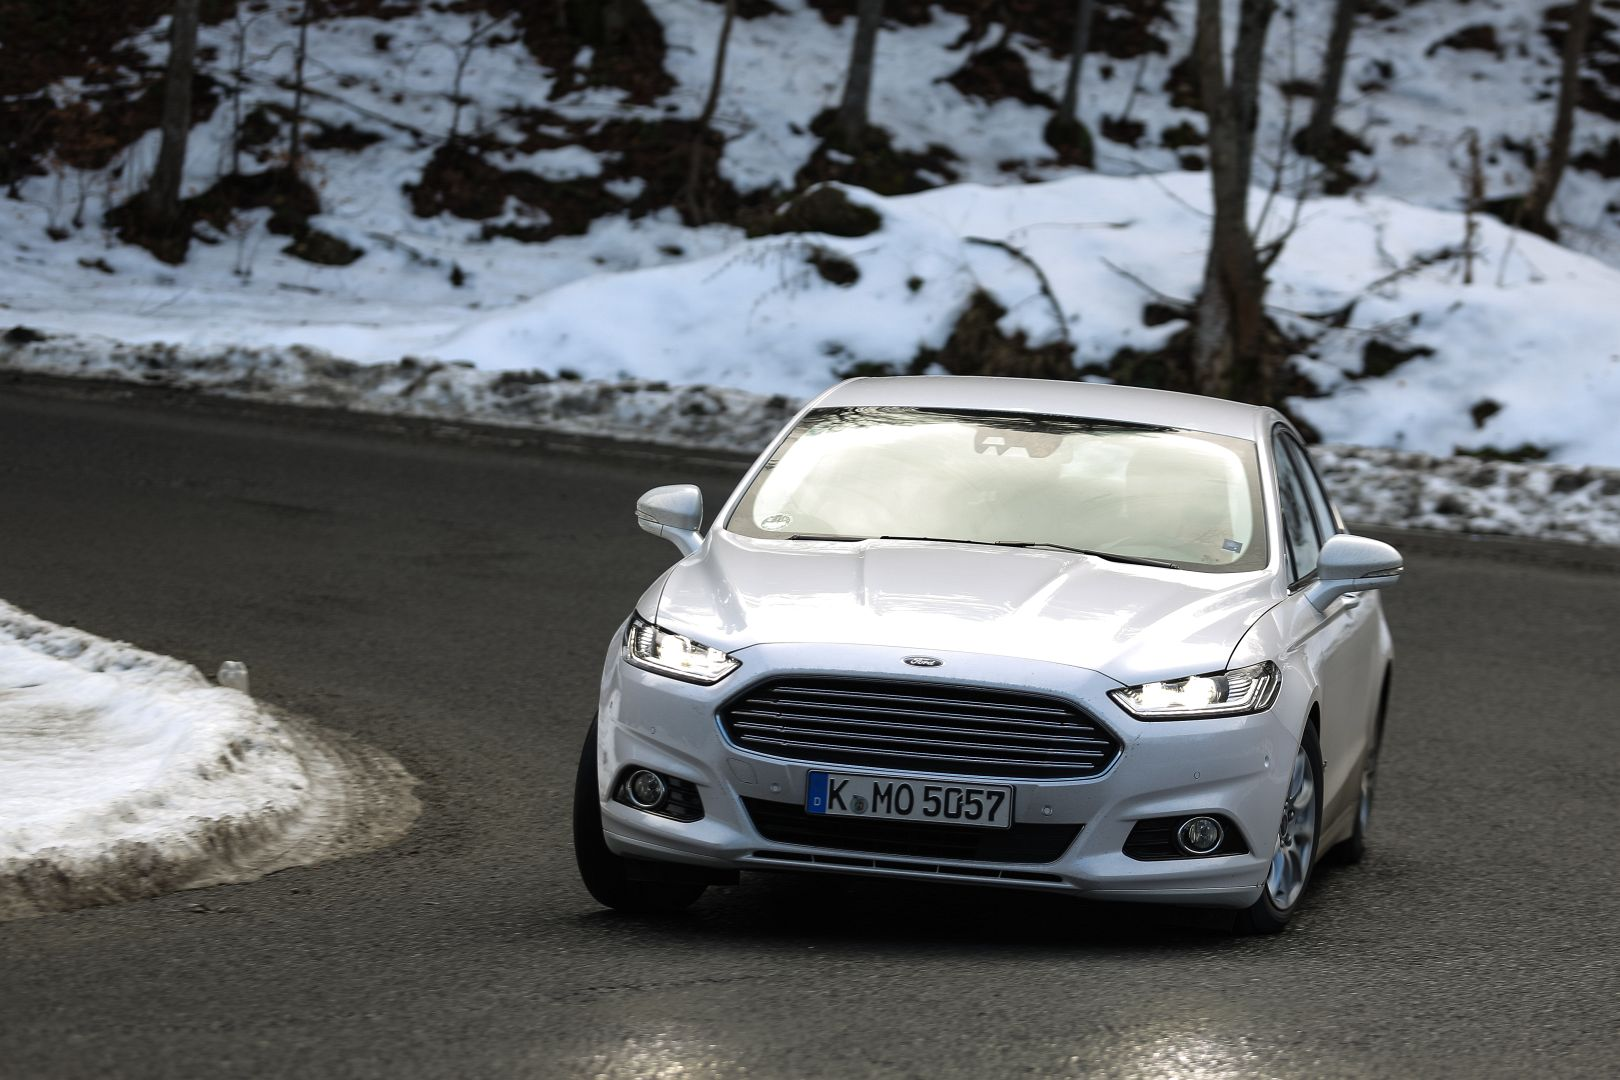 Your 2015 Ford Mondeo HD Wallpapers Are Served   autoevolution 1620x1080